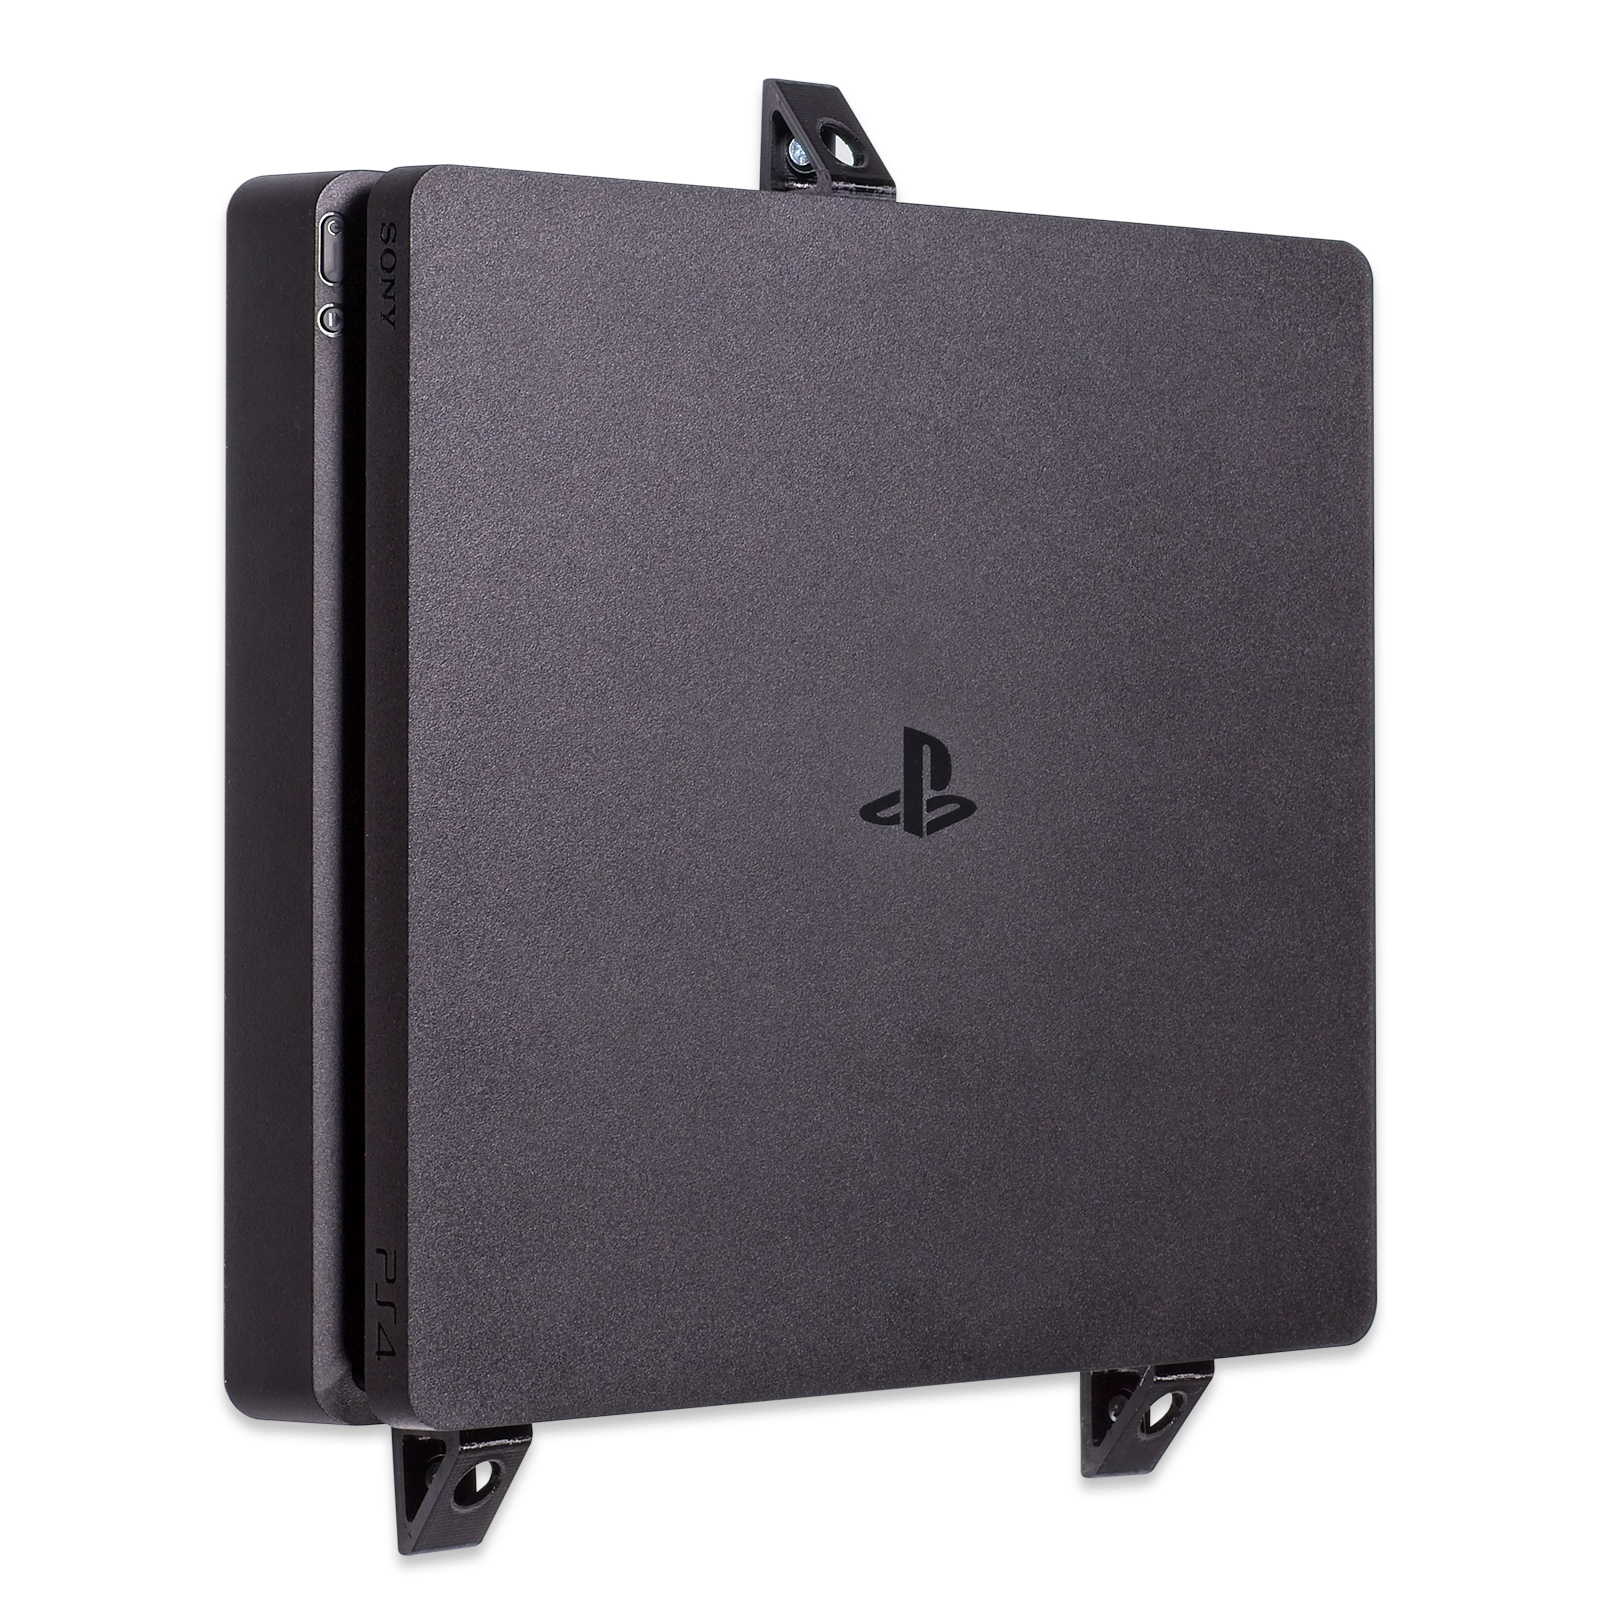 Wall Mount For Playstation 4 Ps4 Slim Wall Mount Bracket